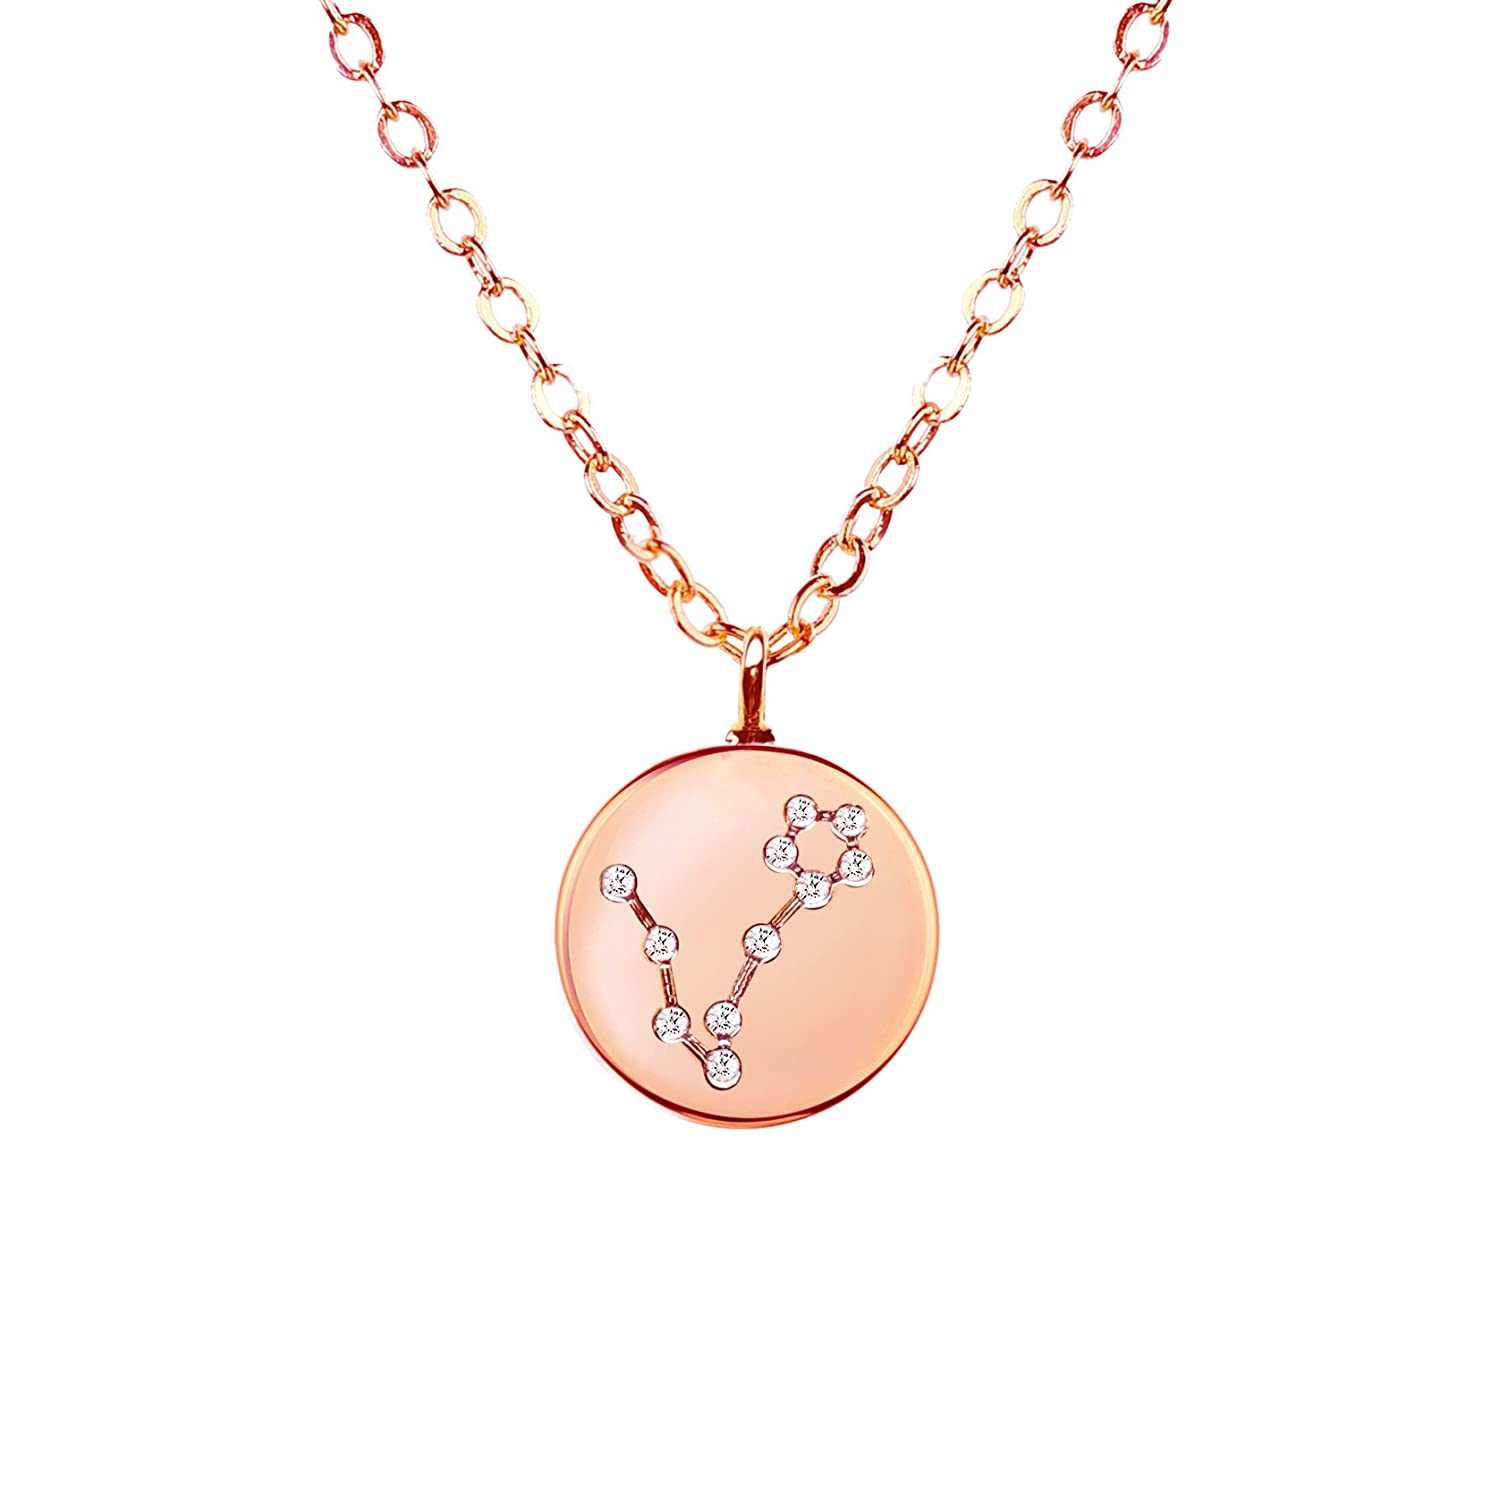 MignonandMignon Gold Zodiac Constellation Disc Necklace Cubic Zirconia Crystal Necklace Birthday Necklace Gift Graduation Gift for Her